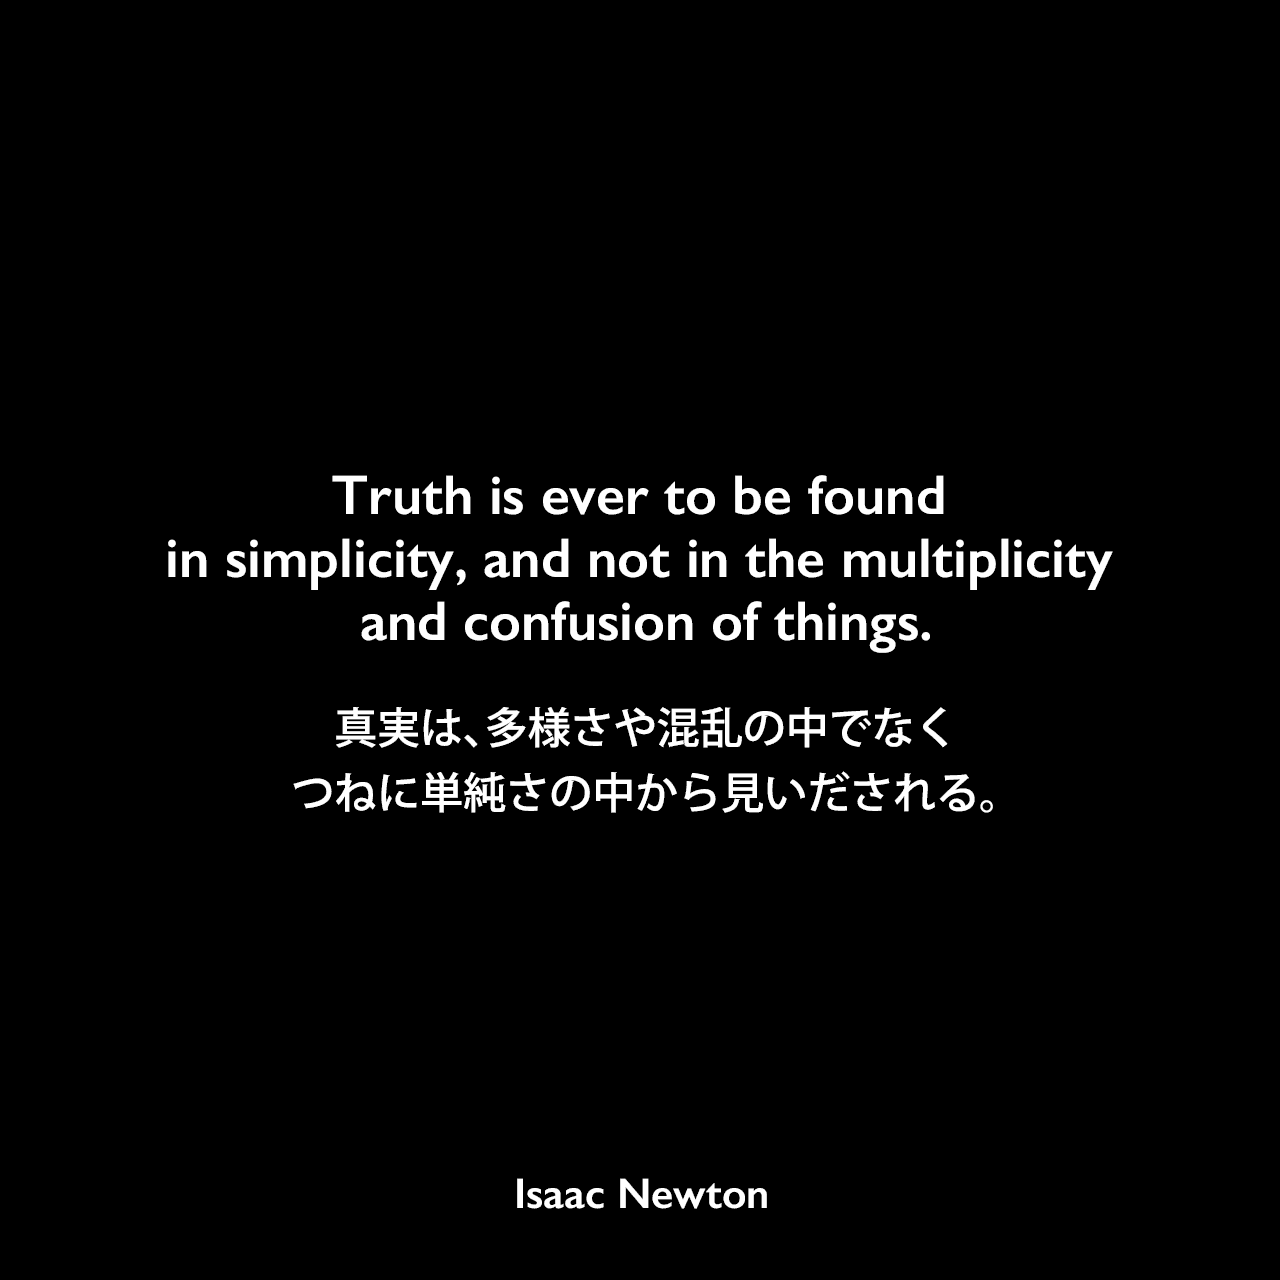 Truth is ever to be found in simplicity, and not in the multiplicity and confusion of things.真実は、多様さや混乱の中でなく、つねに単純さの中から見いだされる。Isaac Newton